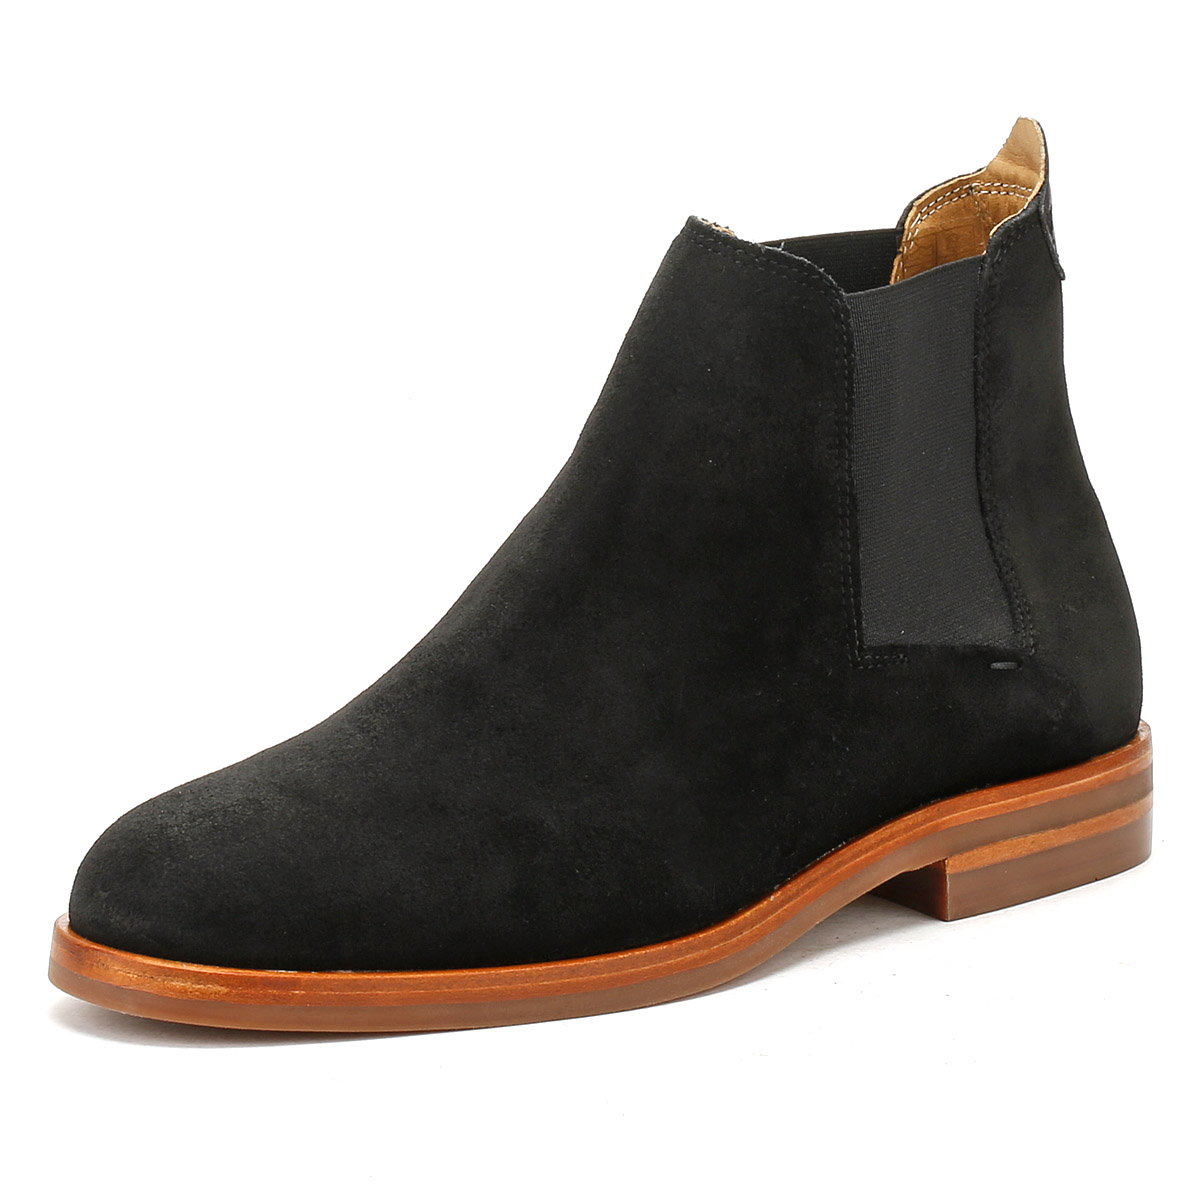 505b08651 Details about Hudson Mens Black Suede Tonti Chelsea Boots Slip On Casual Ankle  Shoes